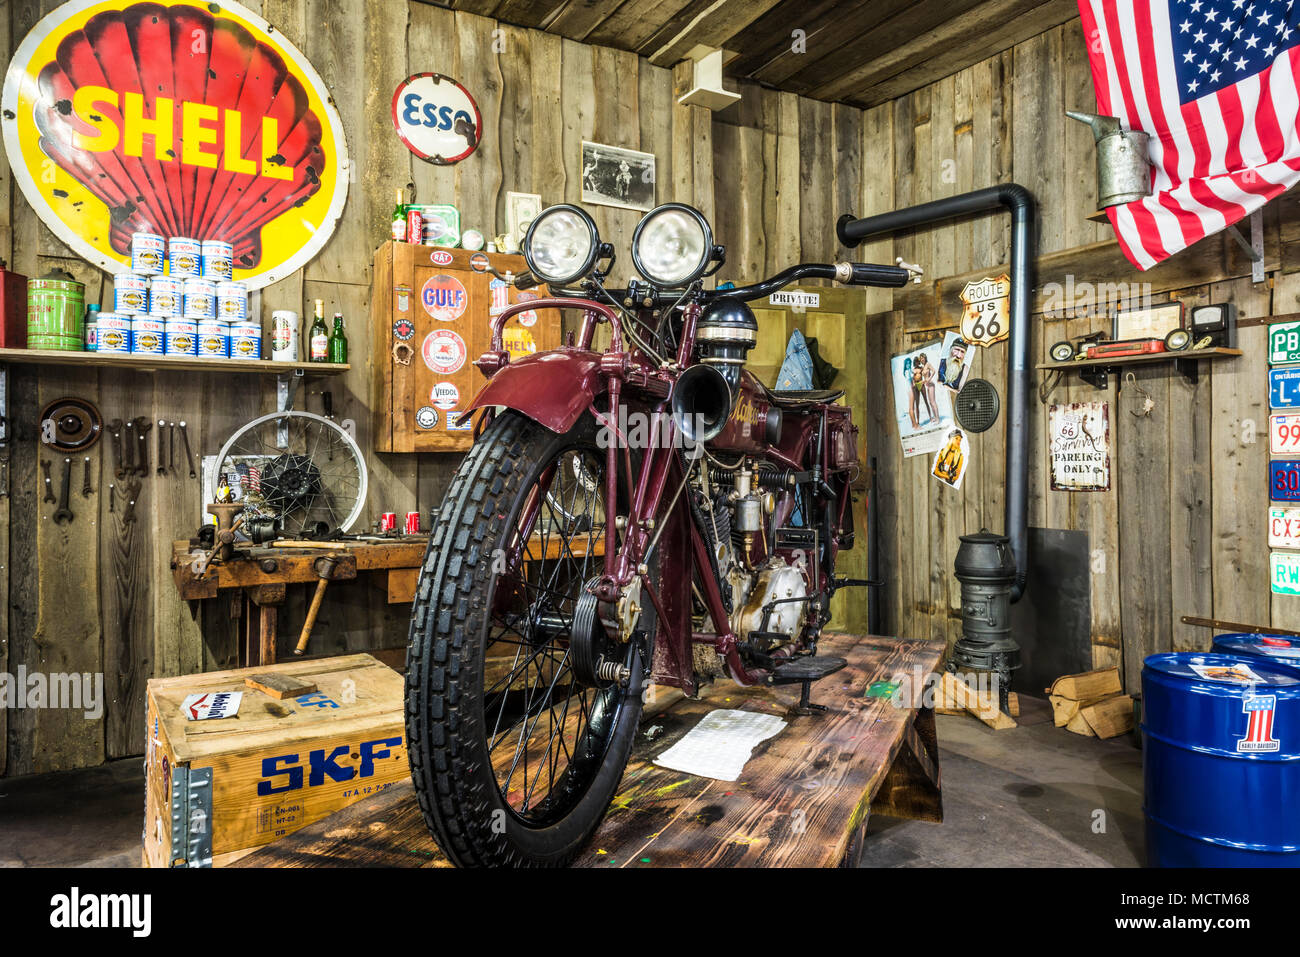 mabeco moto 750 dans un ancien garage auto technik museum berlin allemagne banque d 39 images. Black Bedroom Furniture Sets. Home Design Ideas